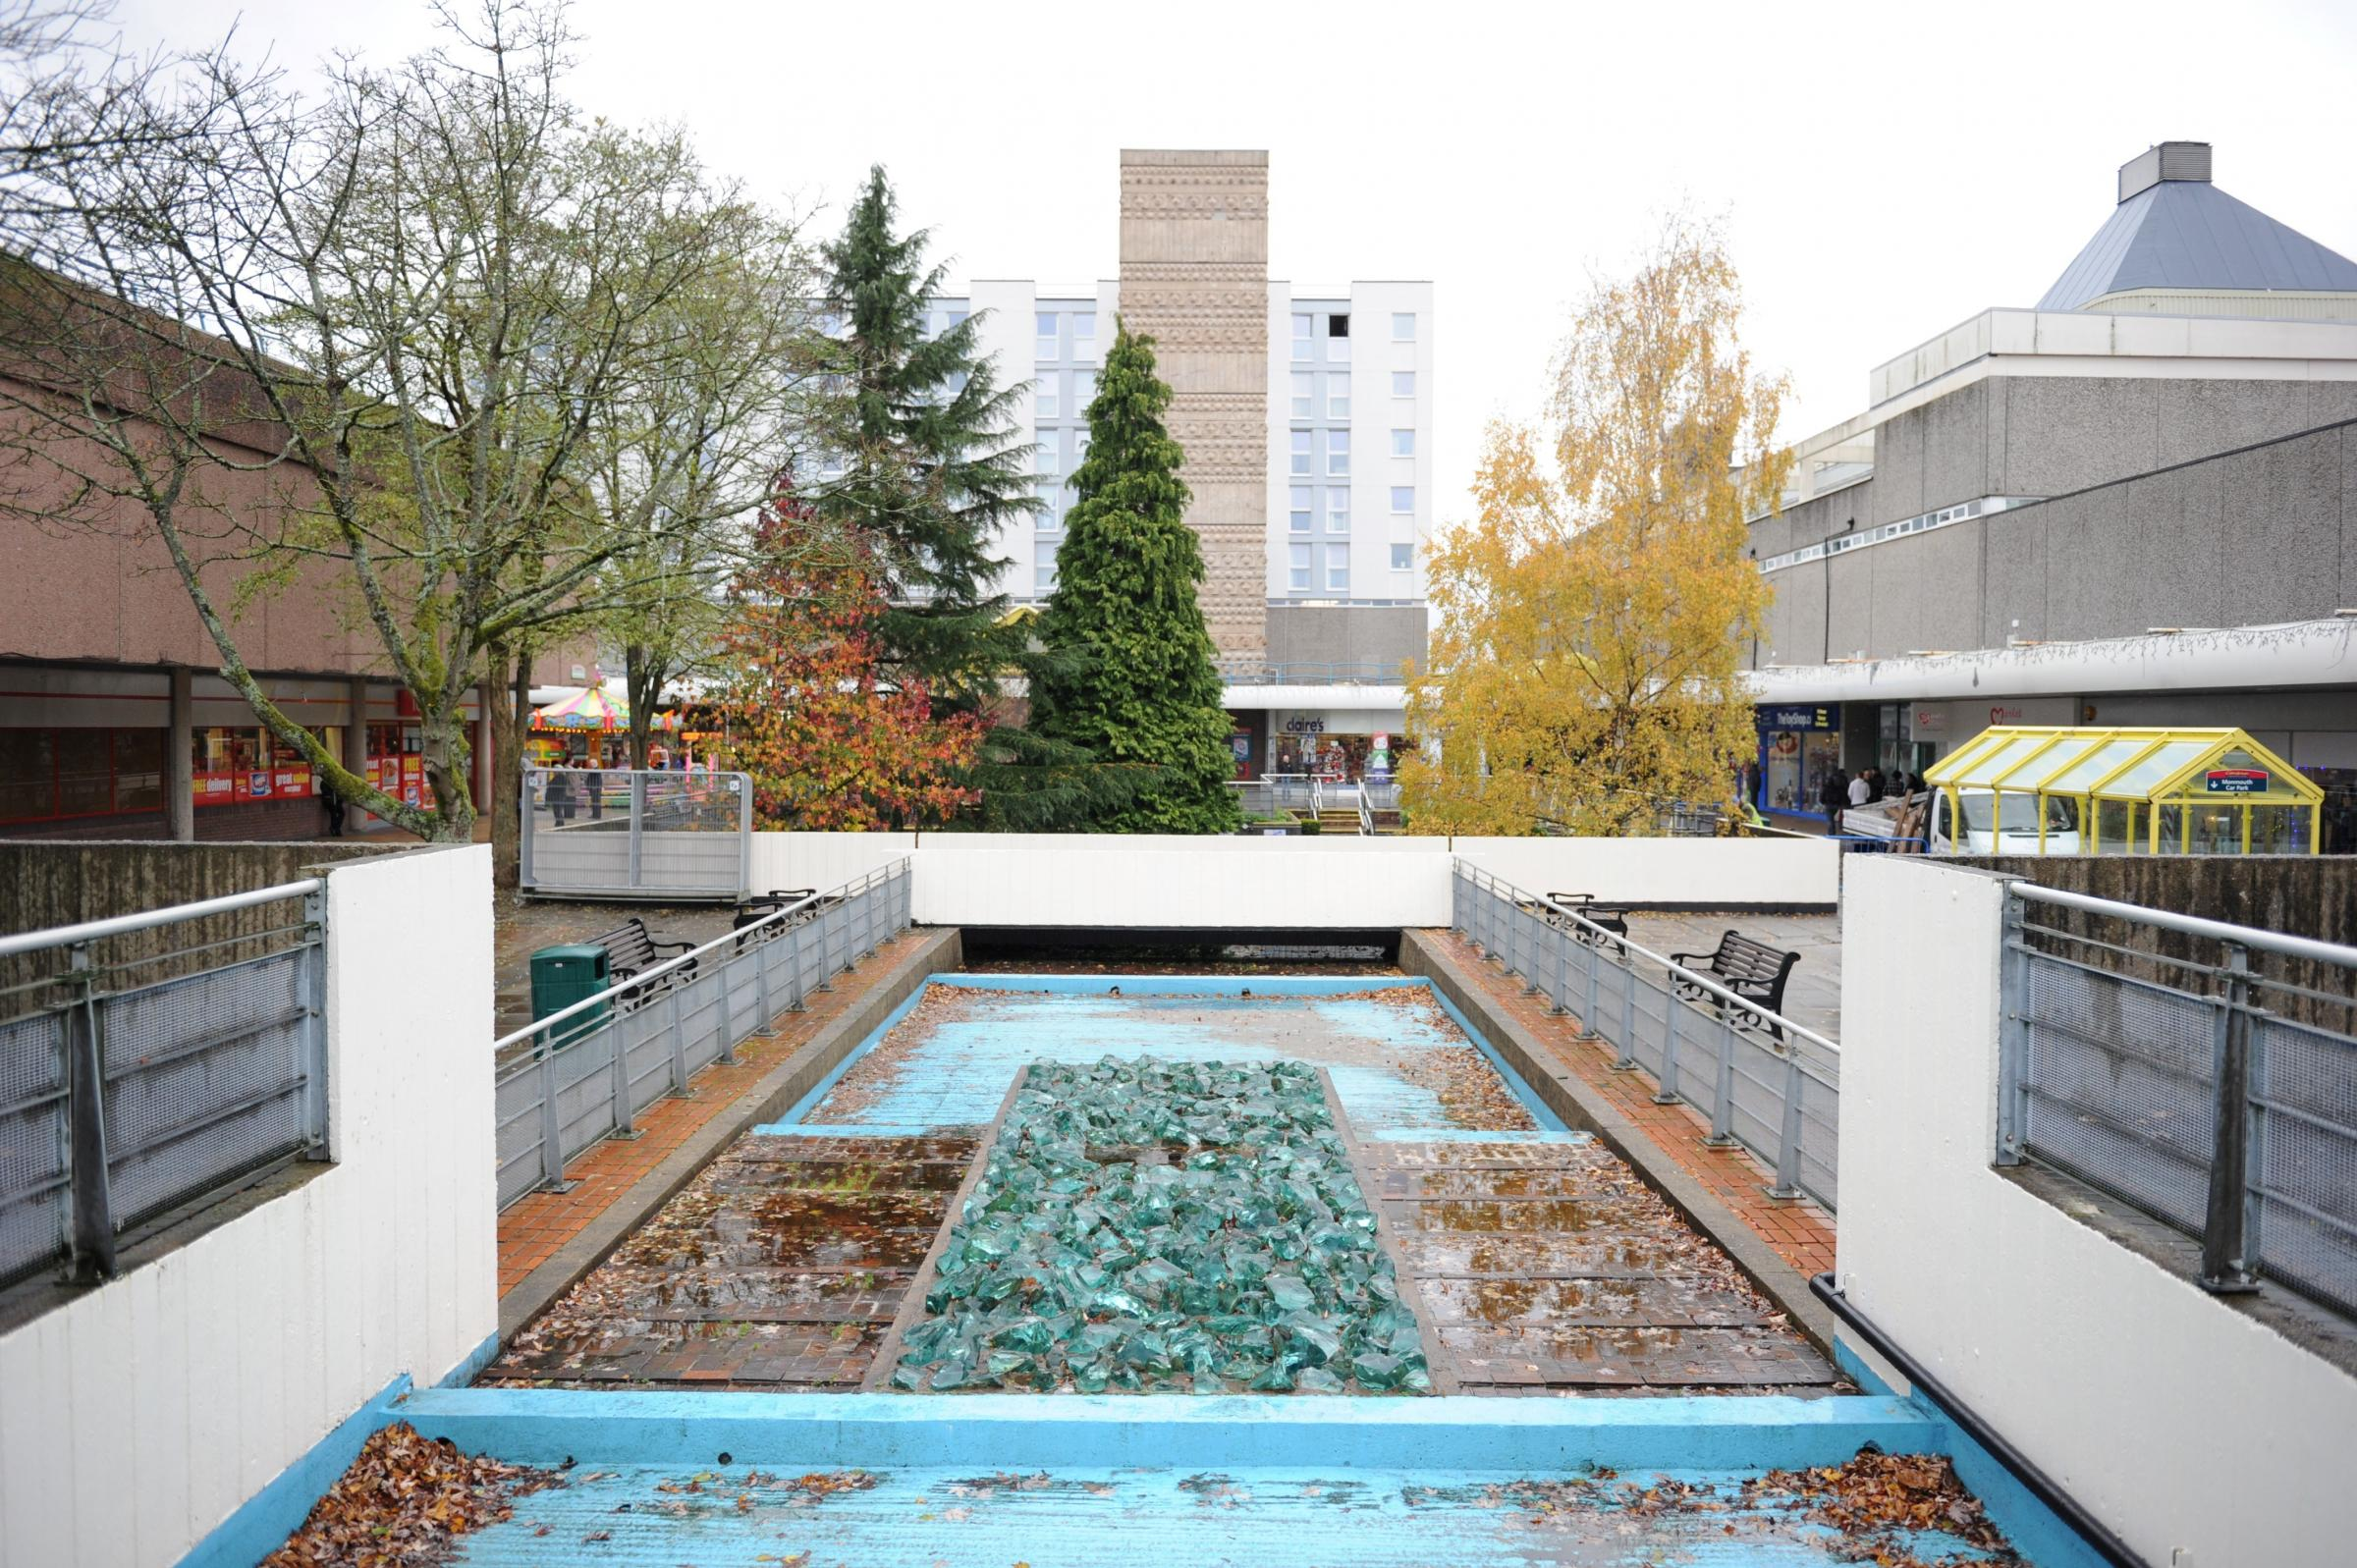 The water garden in Monmouth Square will be removed as part of the developments approved by Torfaen council's planning committee